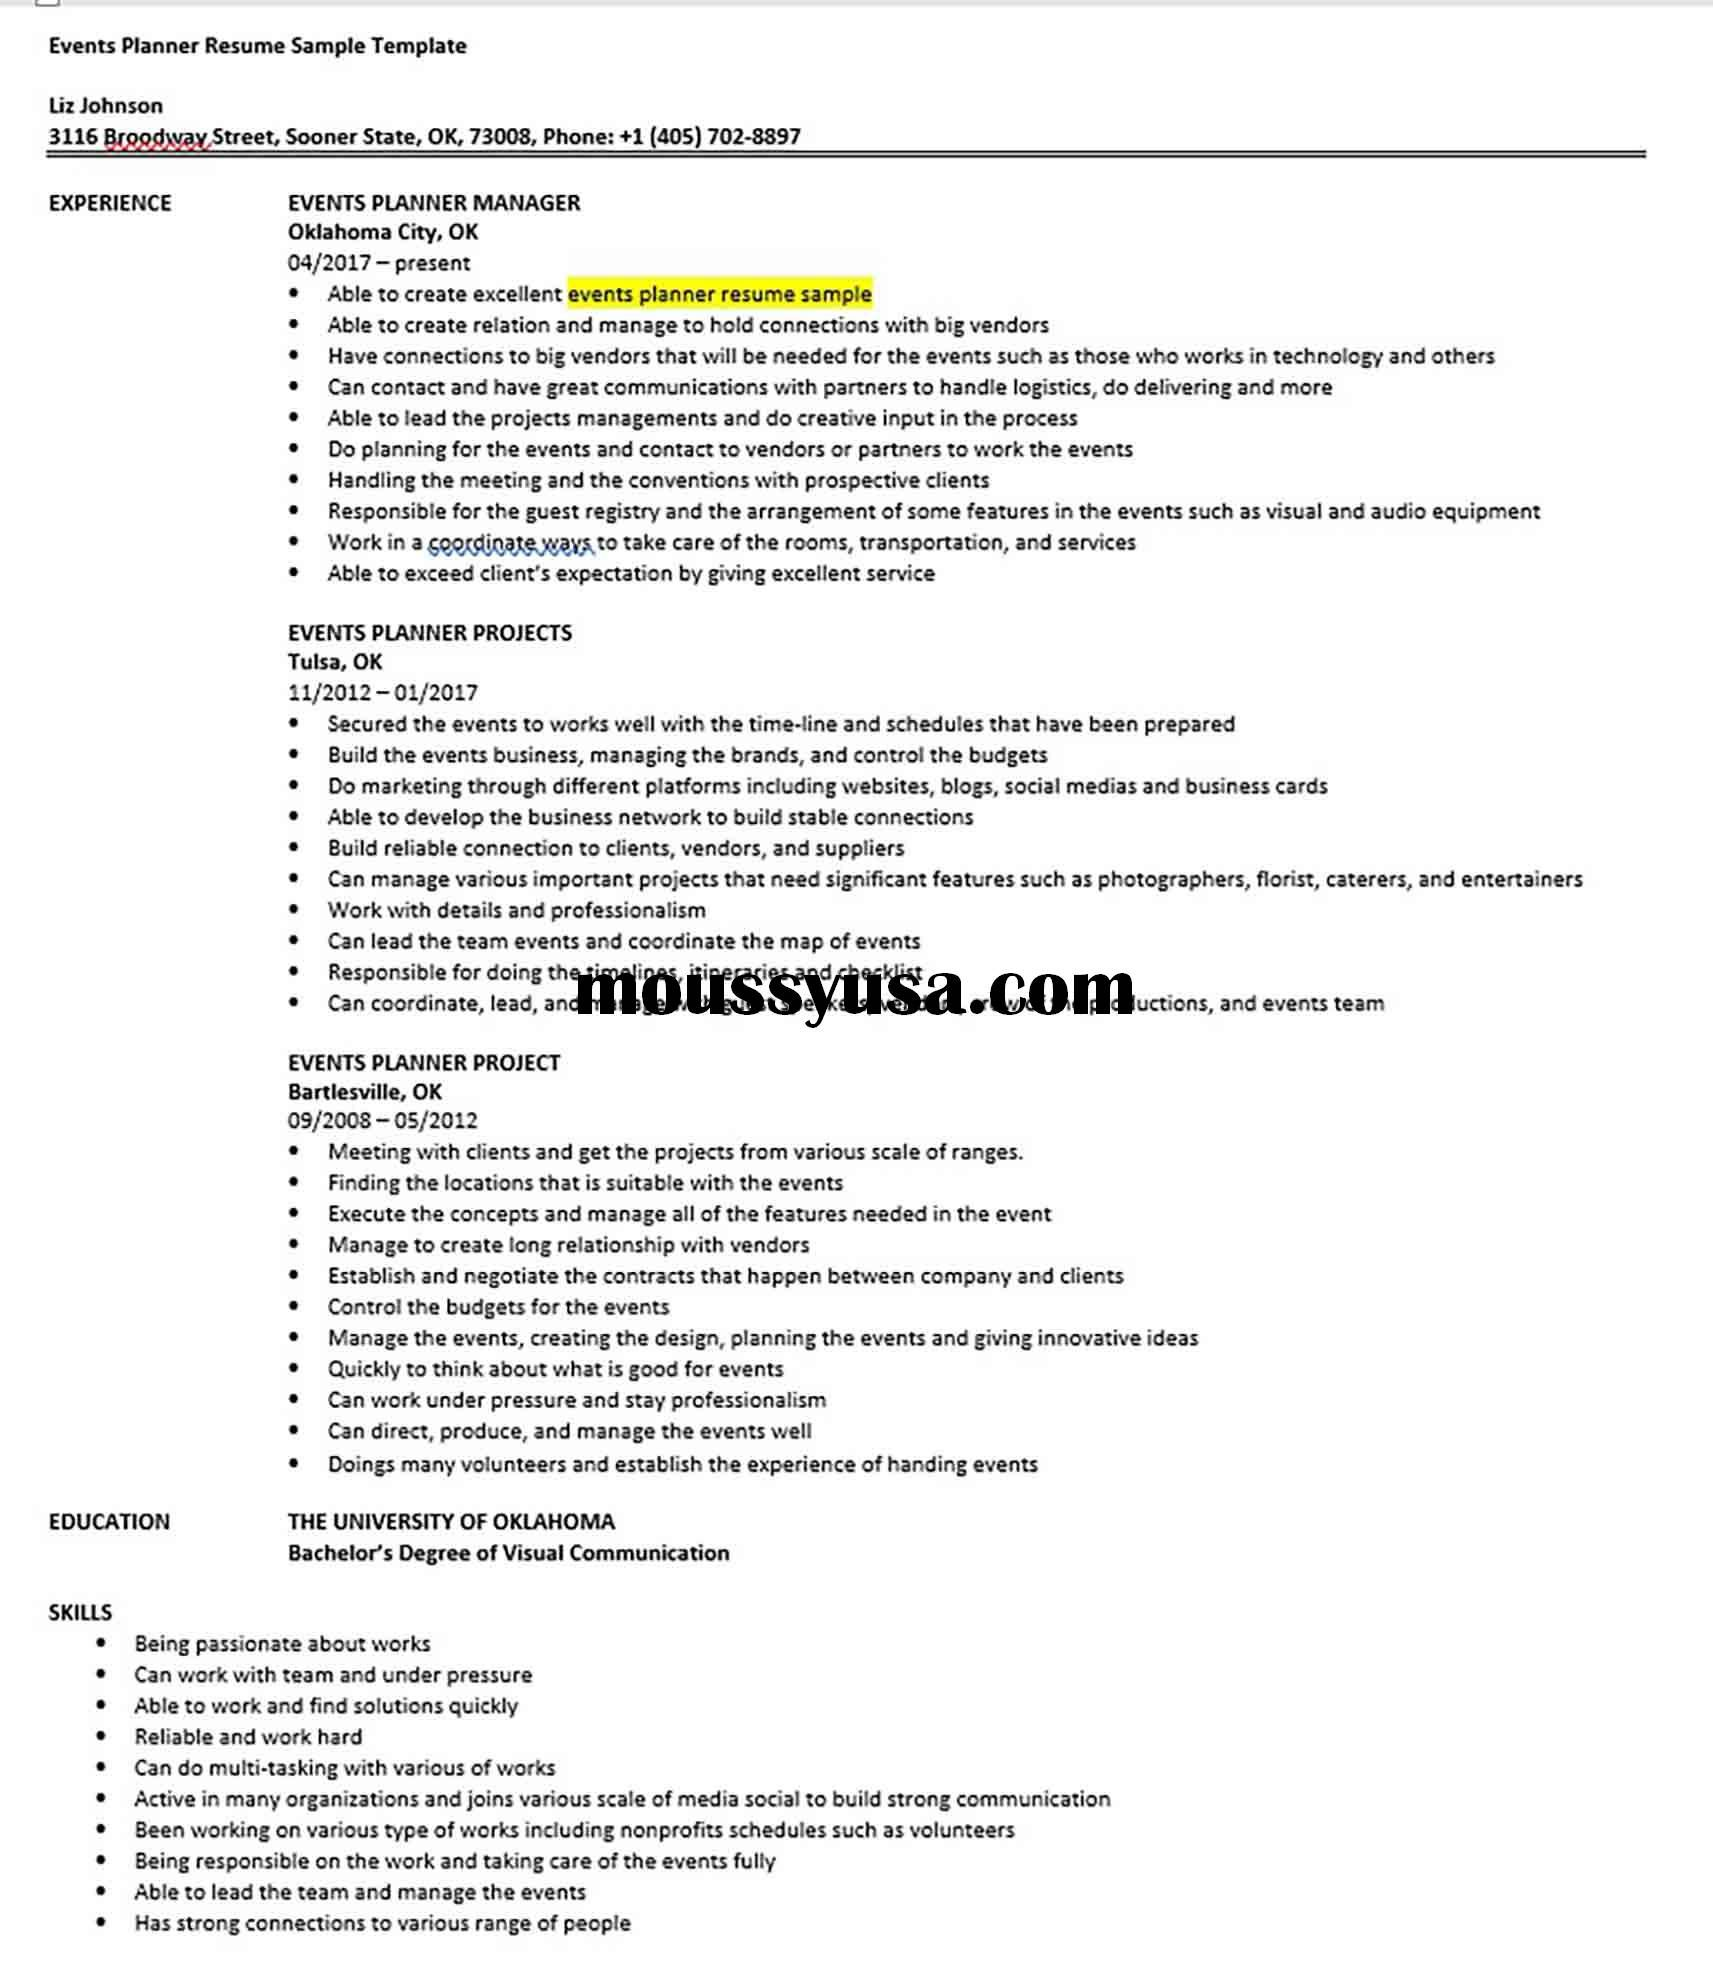 Events Planner Resume Sample Template Events Planner